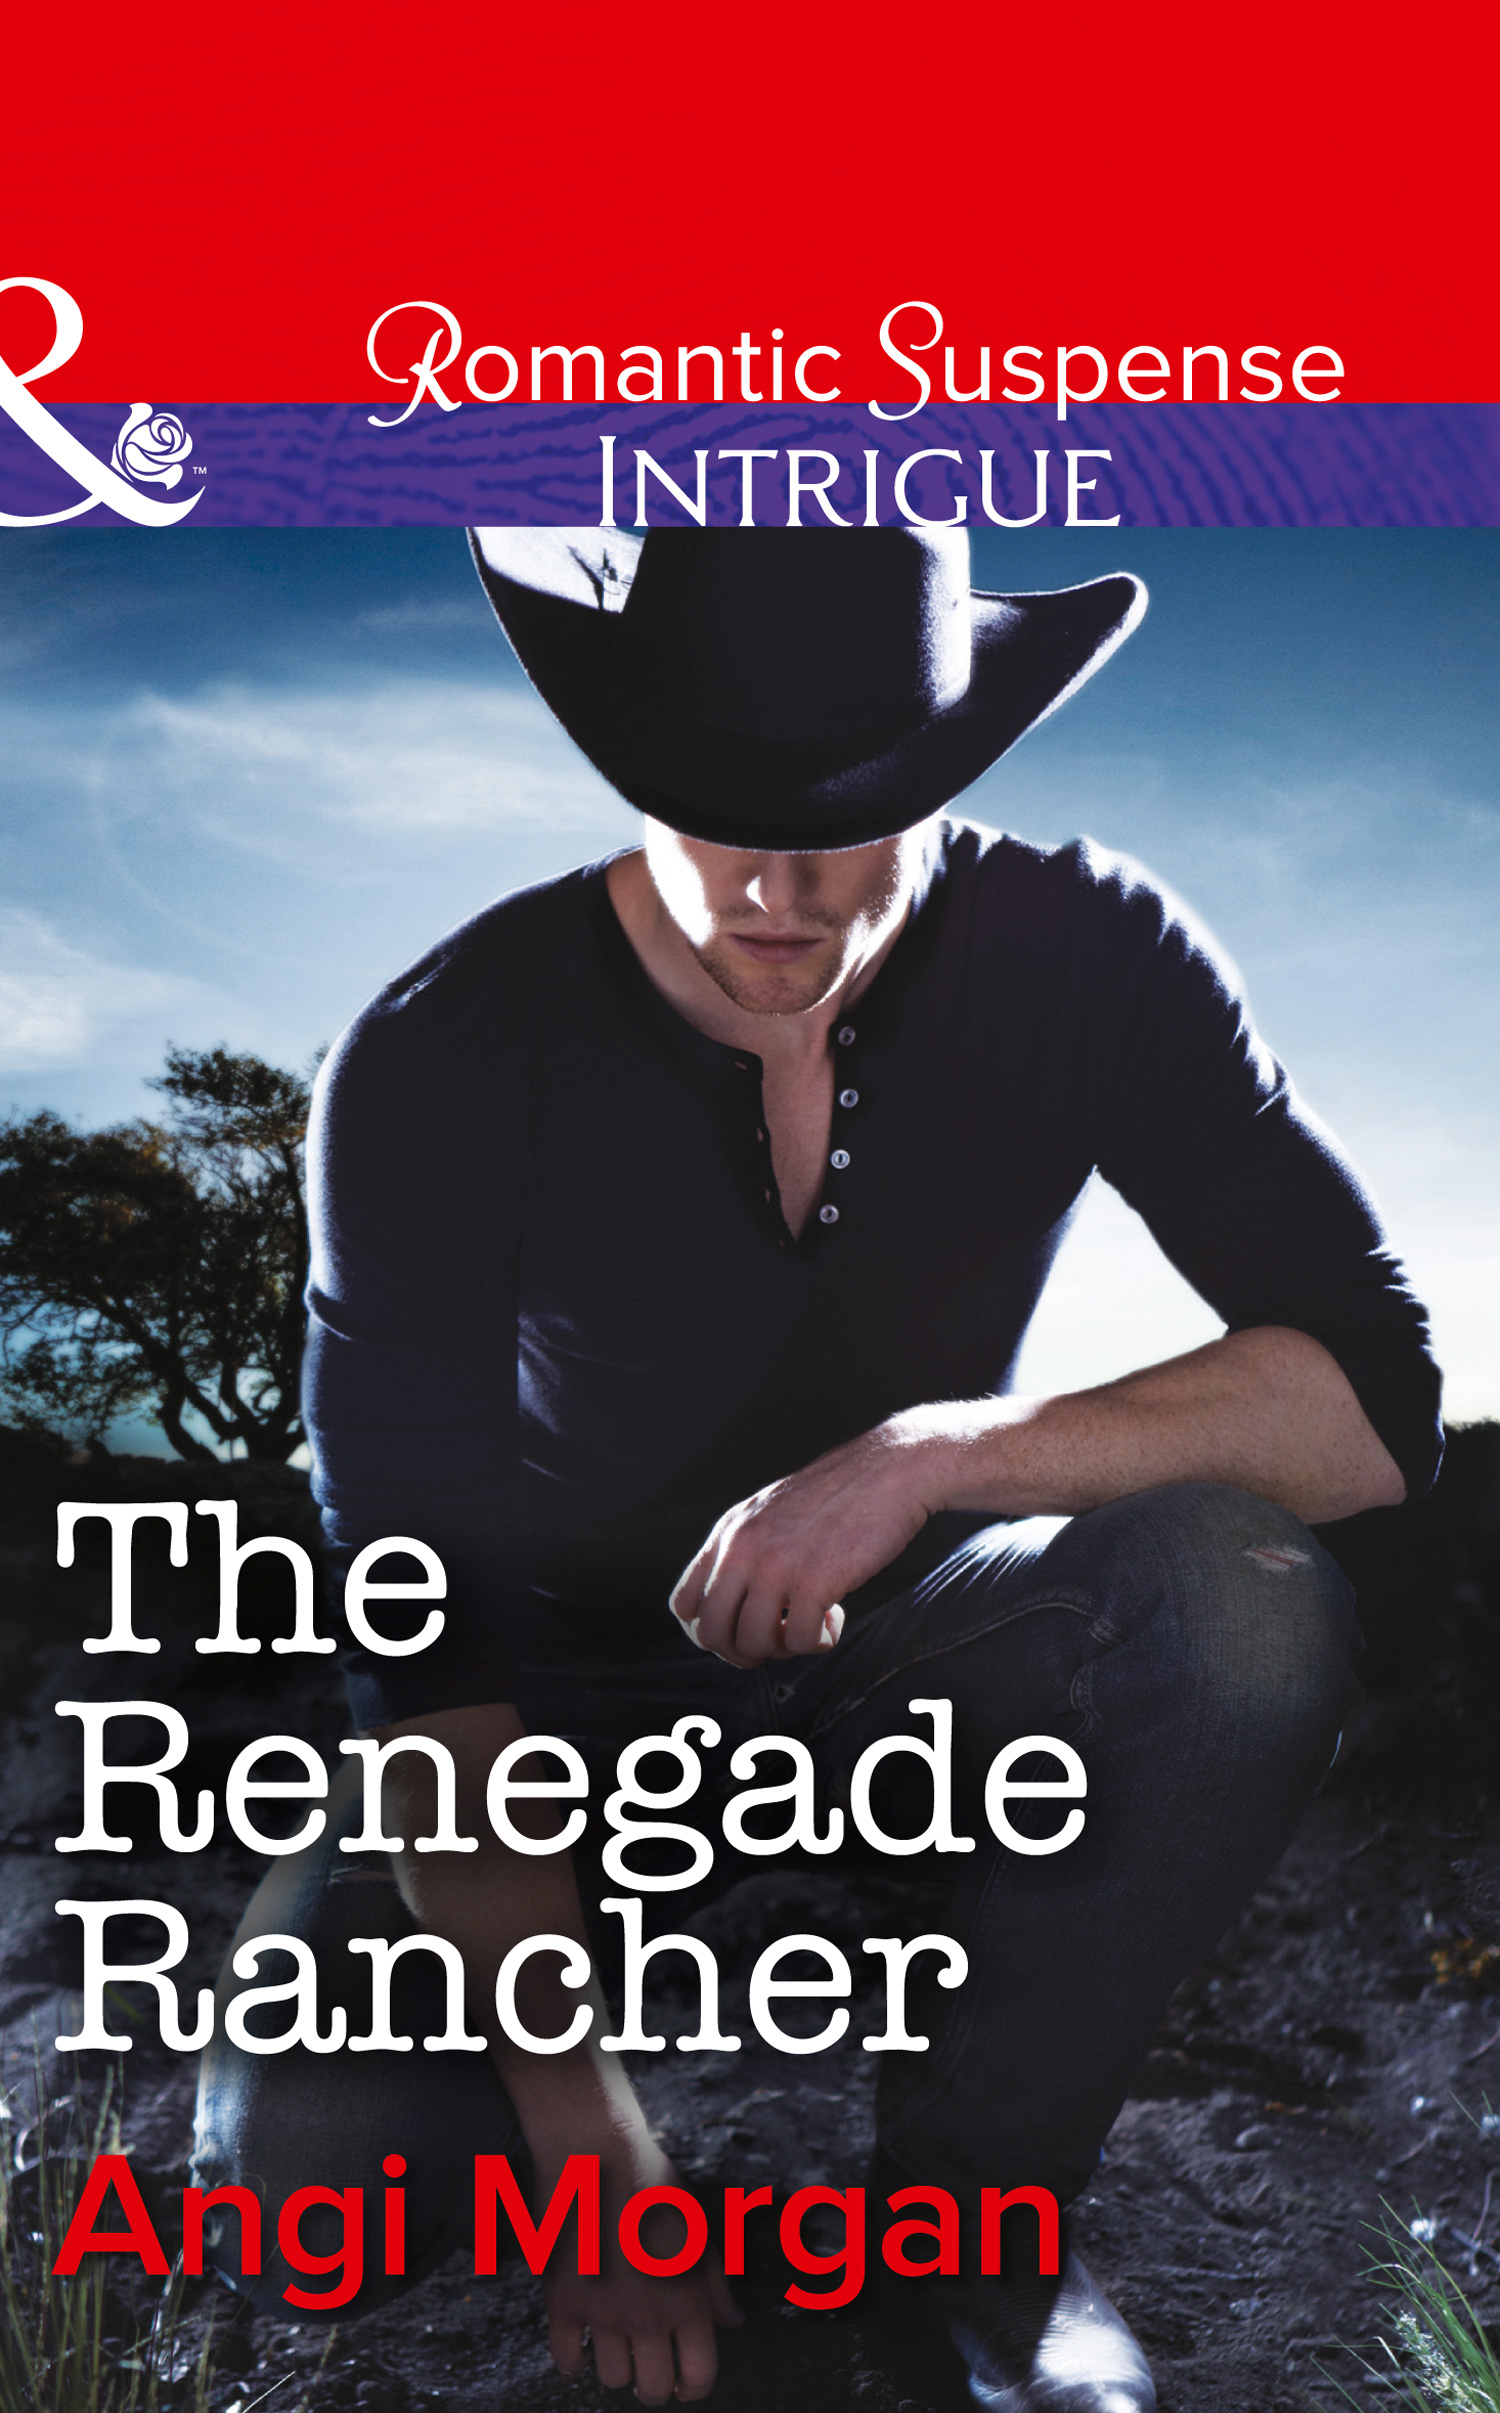 The Renegade Rancher